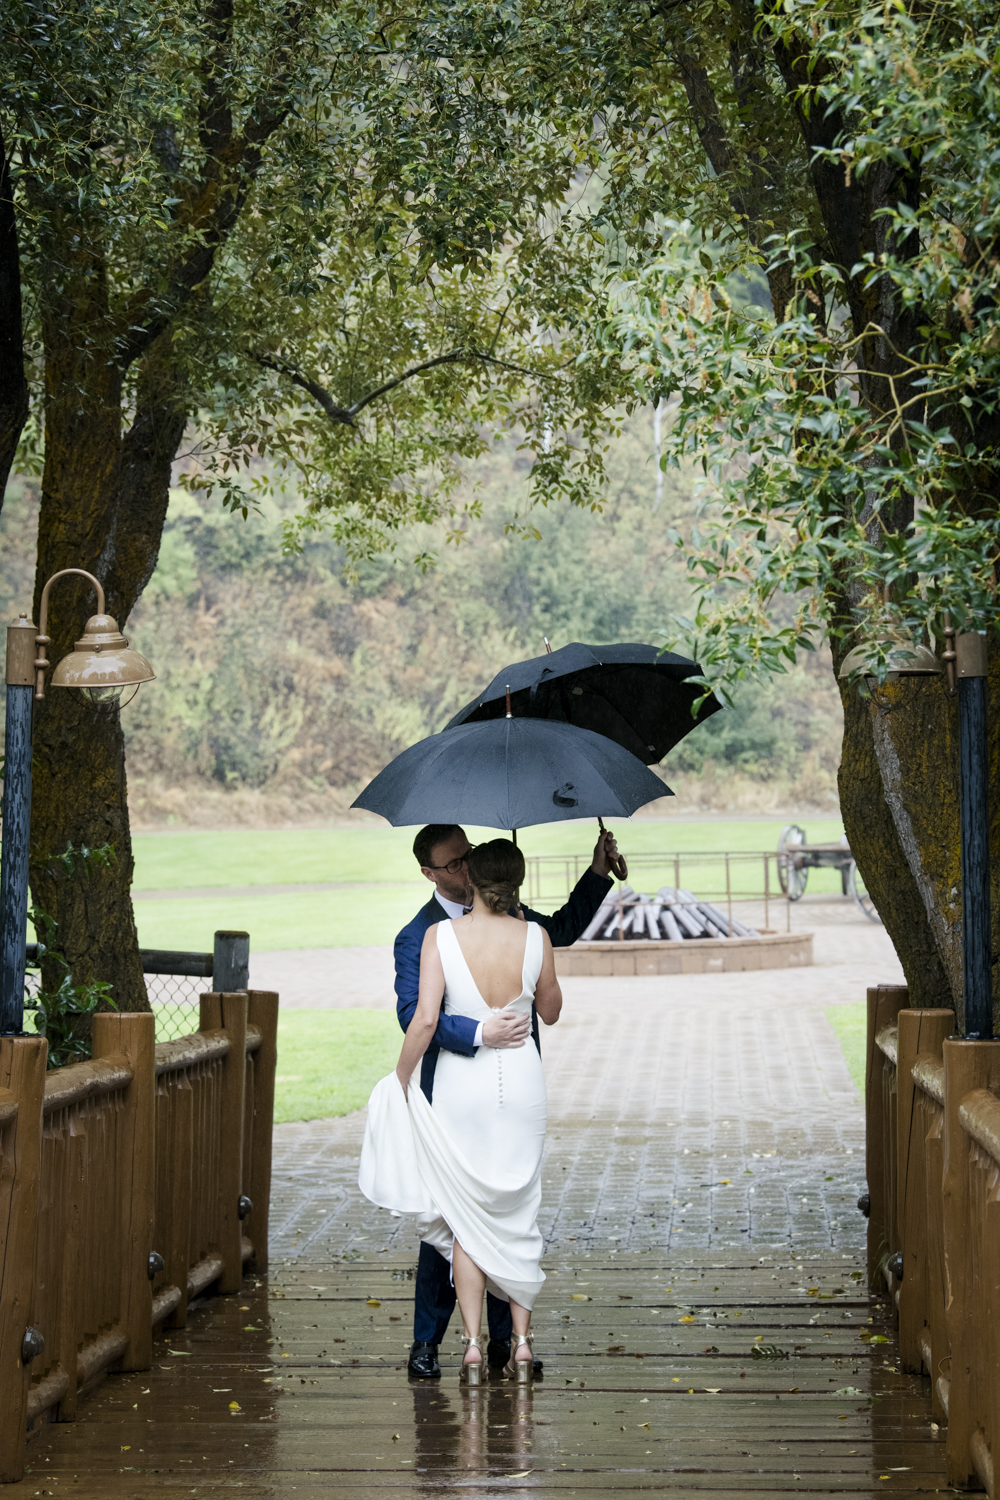 trailcreek_rainy_wedding-017.jpg